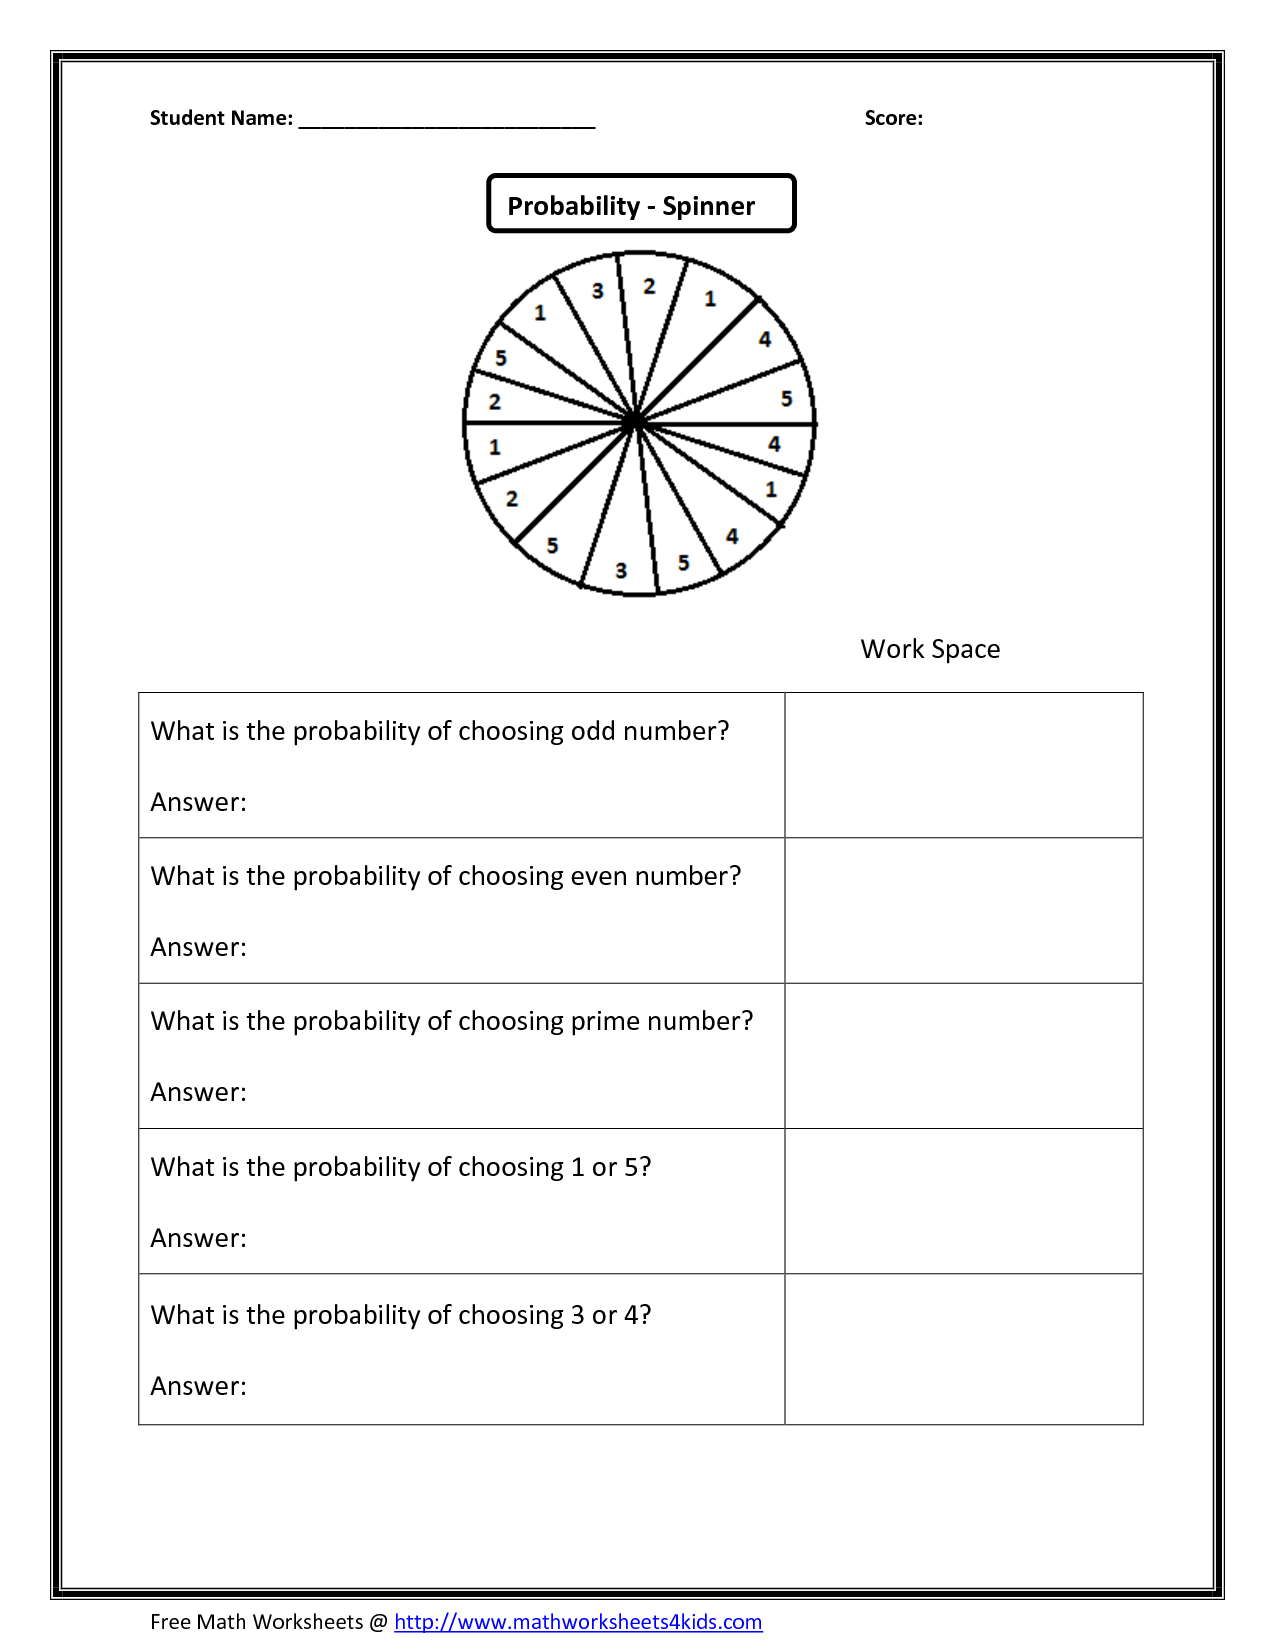 Triangle Inequality Worksheet